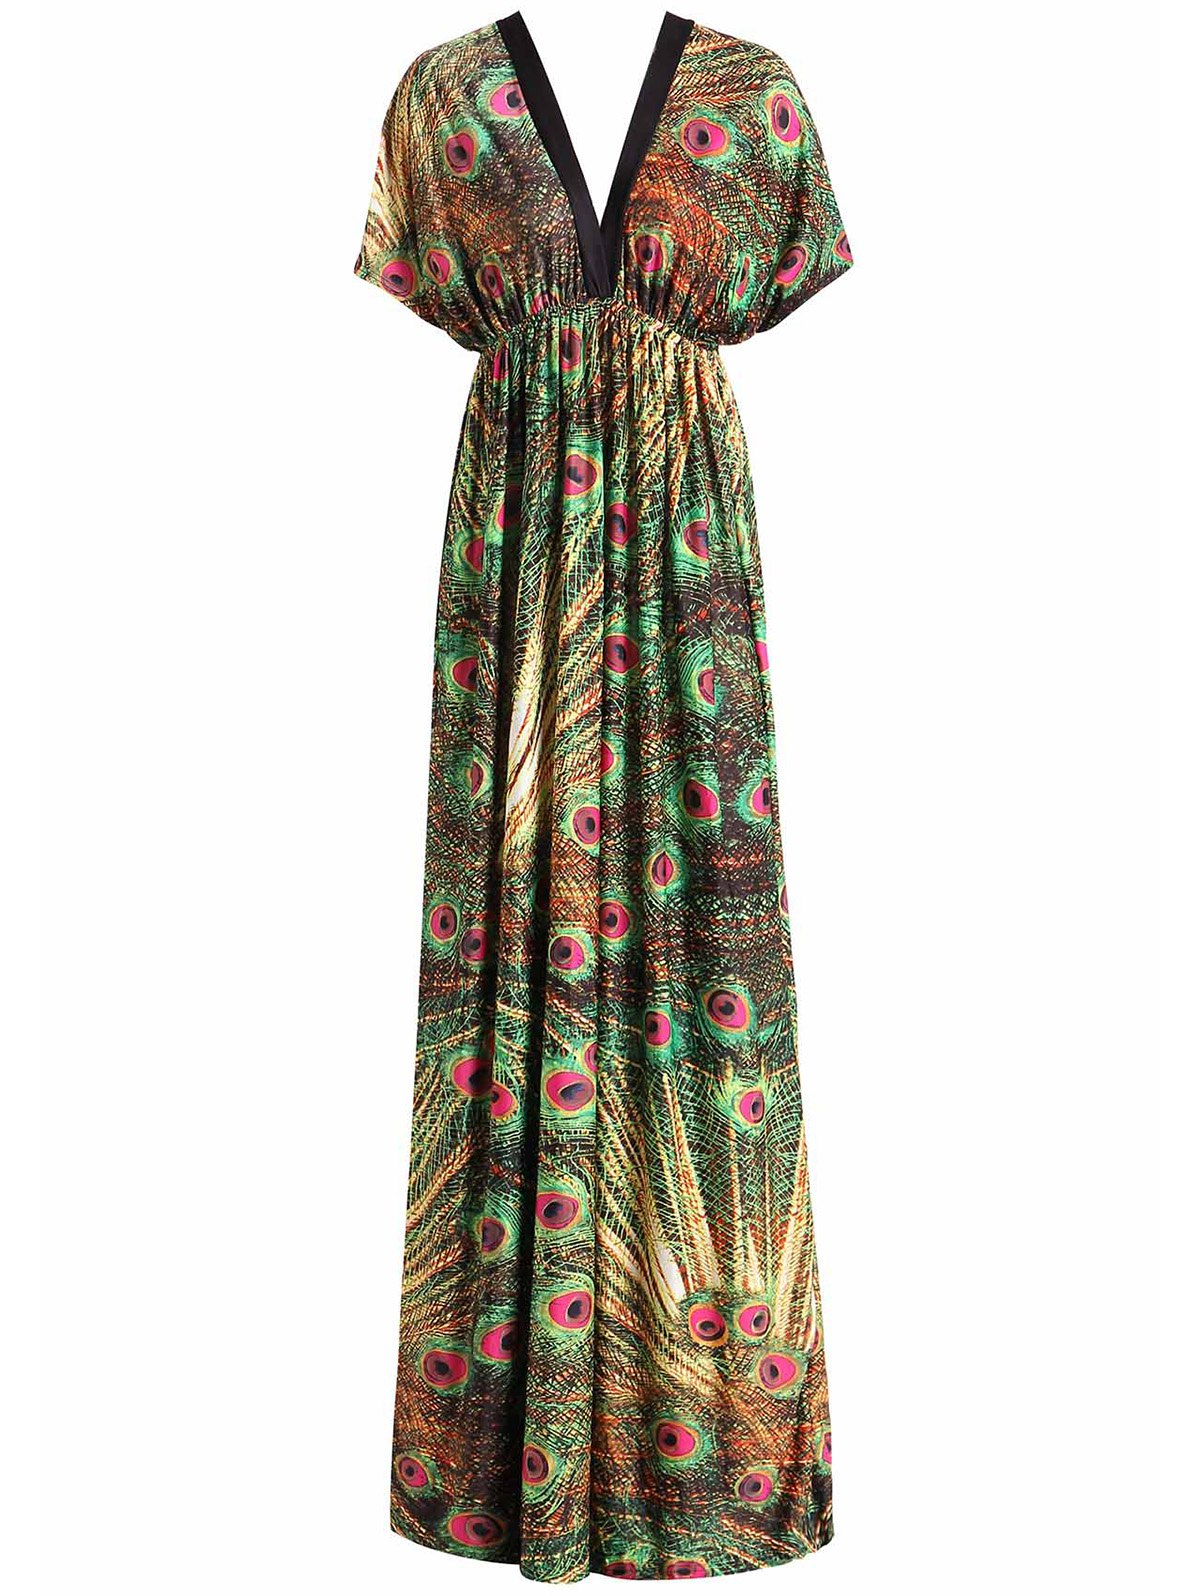 Bohemian Style Peacock Print V-Neck Short Sleeve Dress For Women - COLORMIX XL